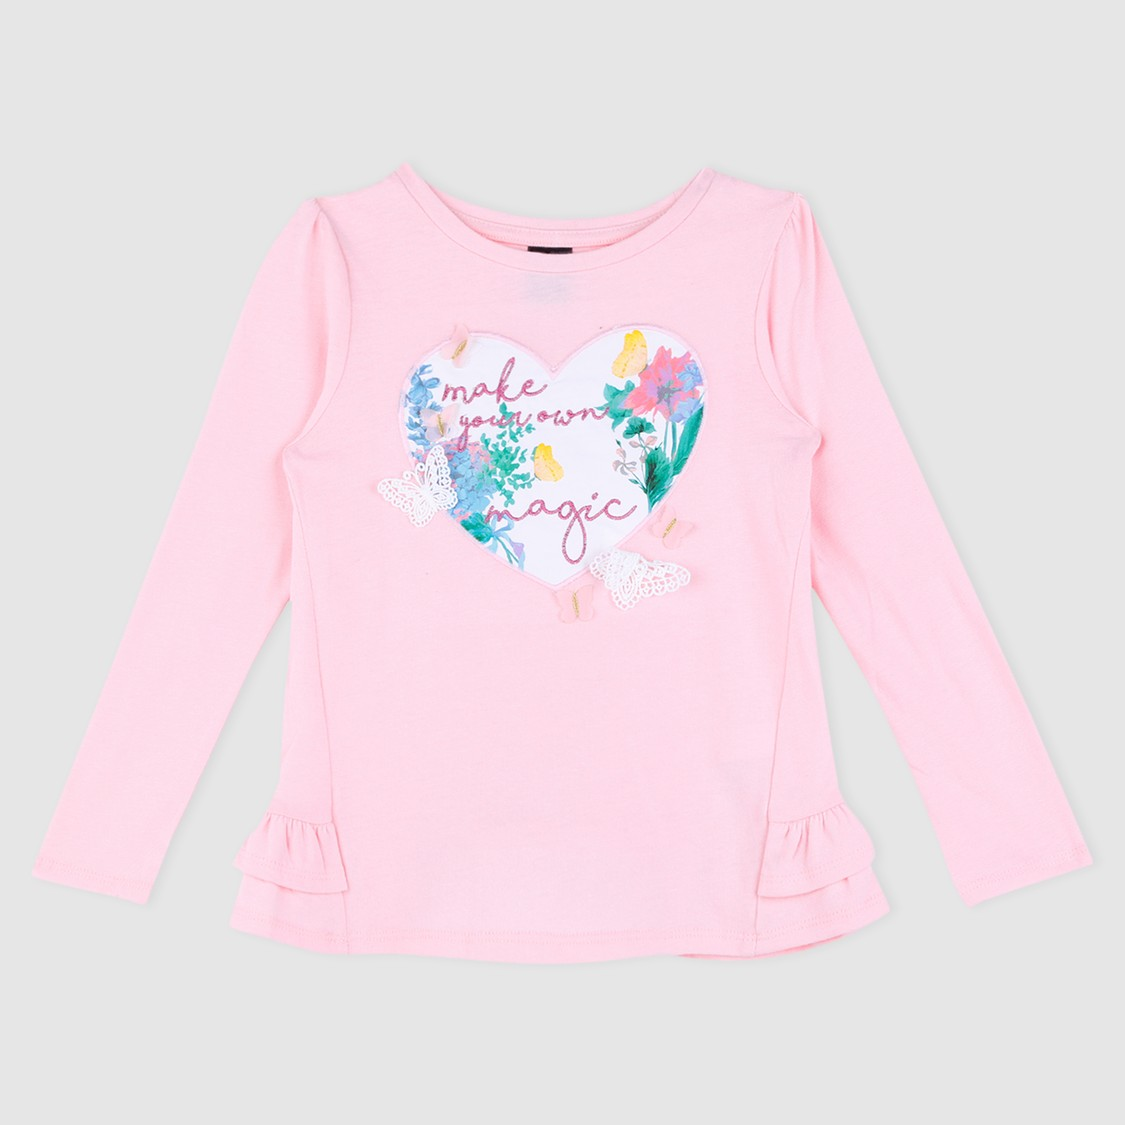 Embroidered Long Sleeves T-Shirt